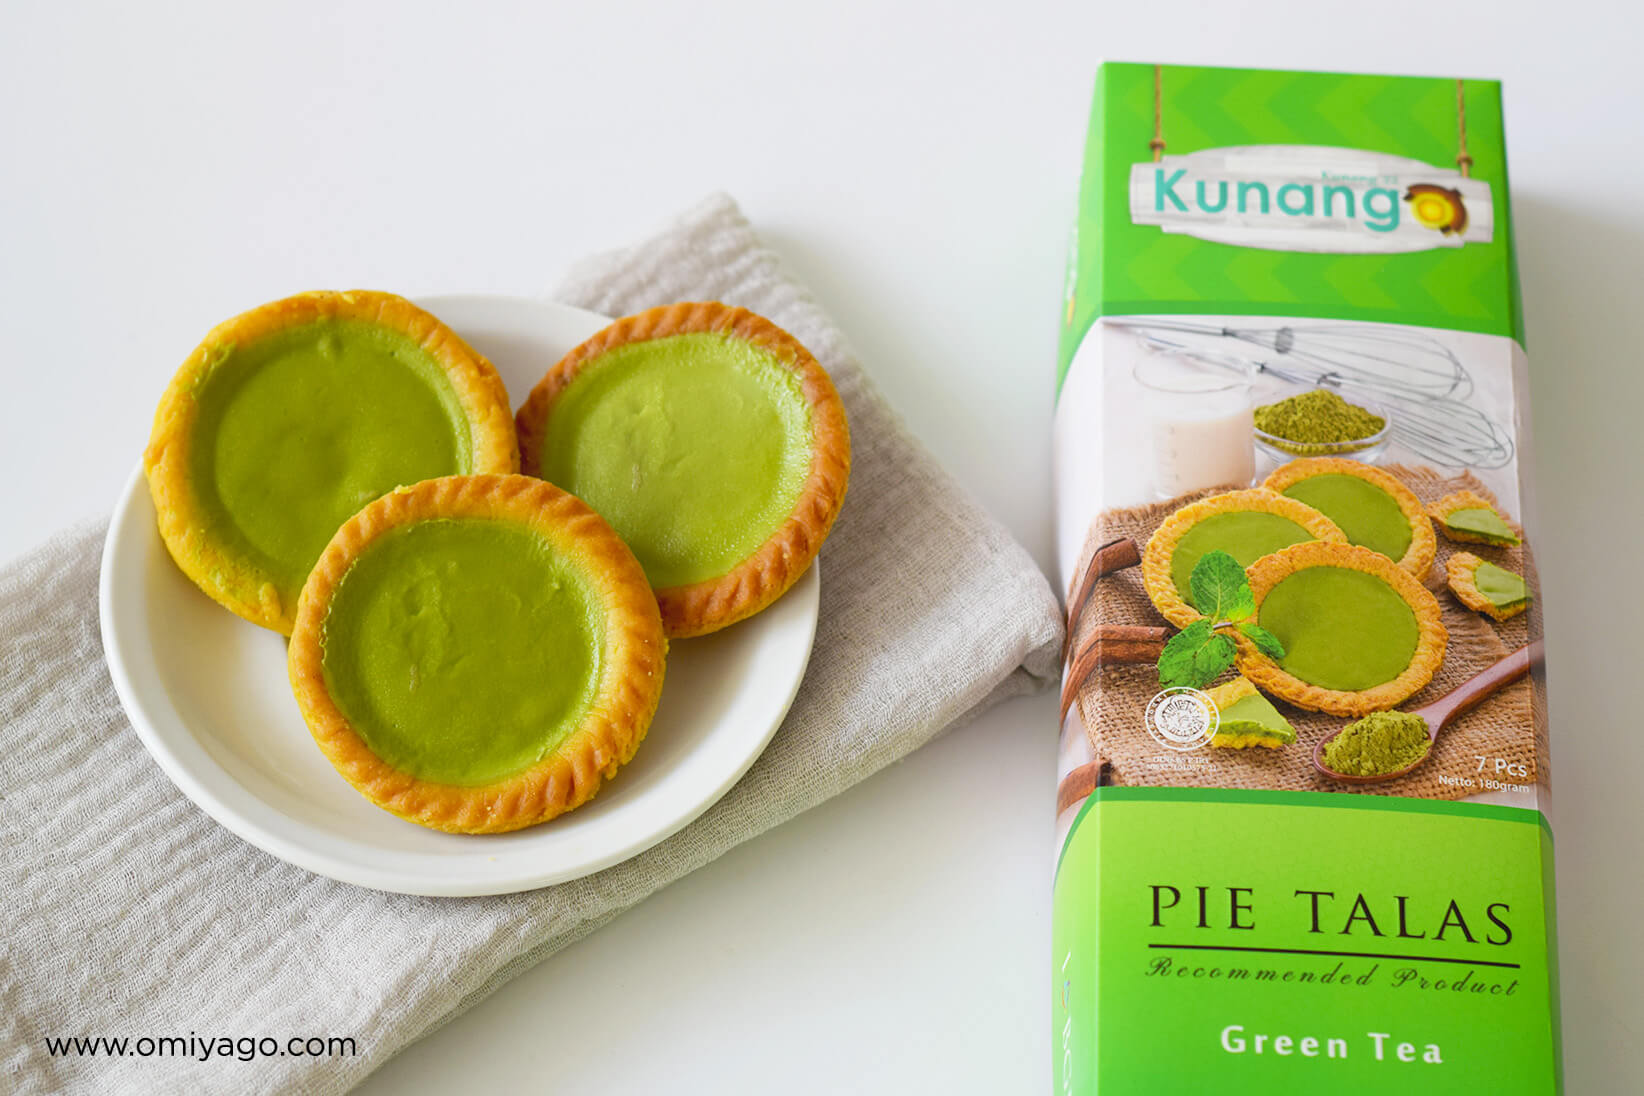 Pie Talas Kunang Green Tea